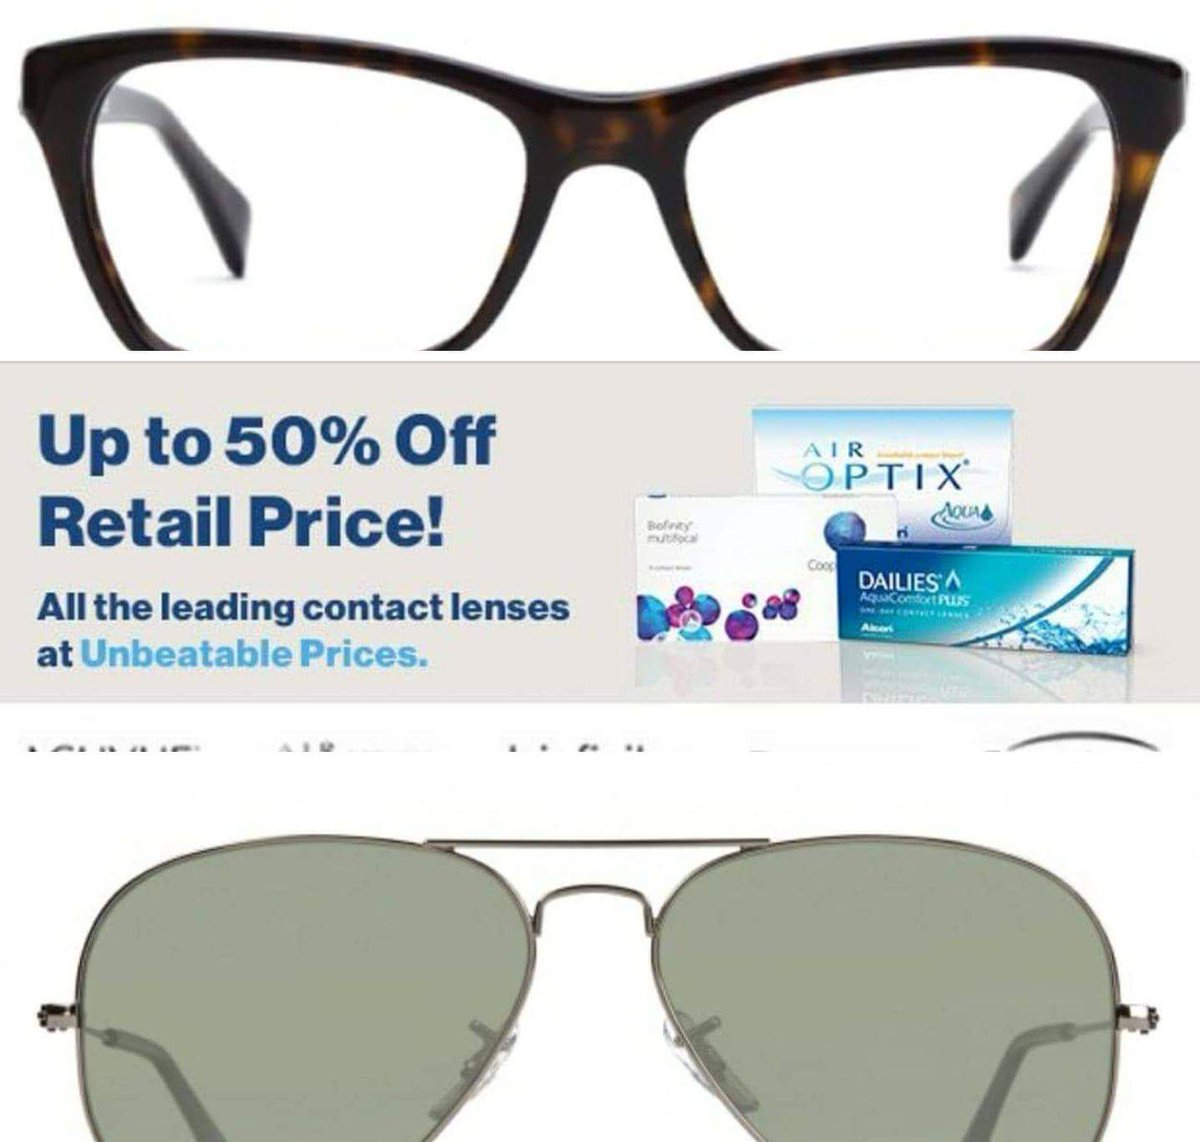 GlassesUSA Biggest BOGO Sale + Get $25 Off Every $65 You Spend with #Code + #FREE Shipping incl basic lens!...  http:// fb.me/6ITR7BKQf  &nbsp;  <br>http://pic.twitter.com/x1maWq7Ygo